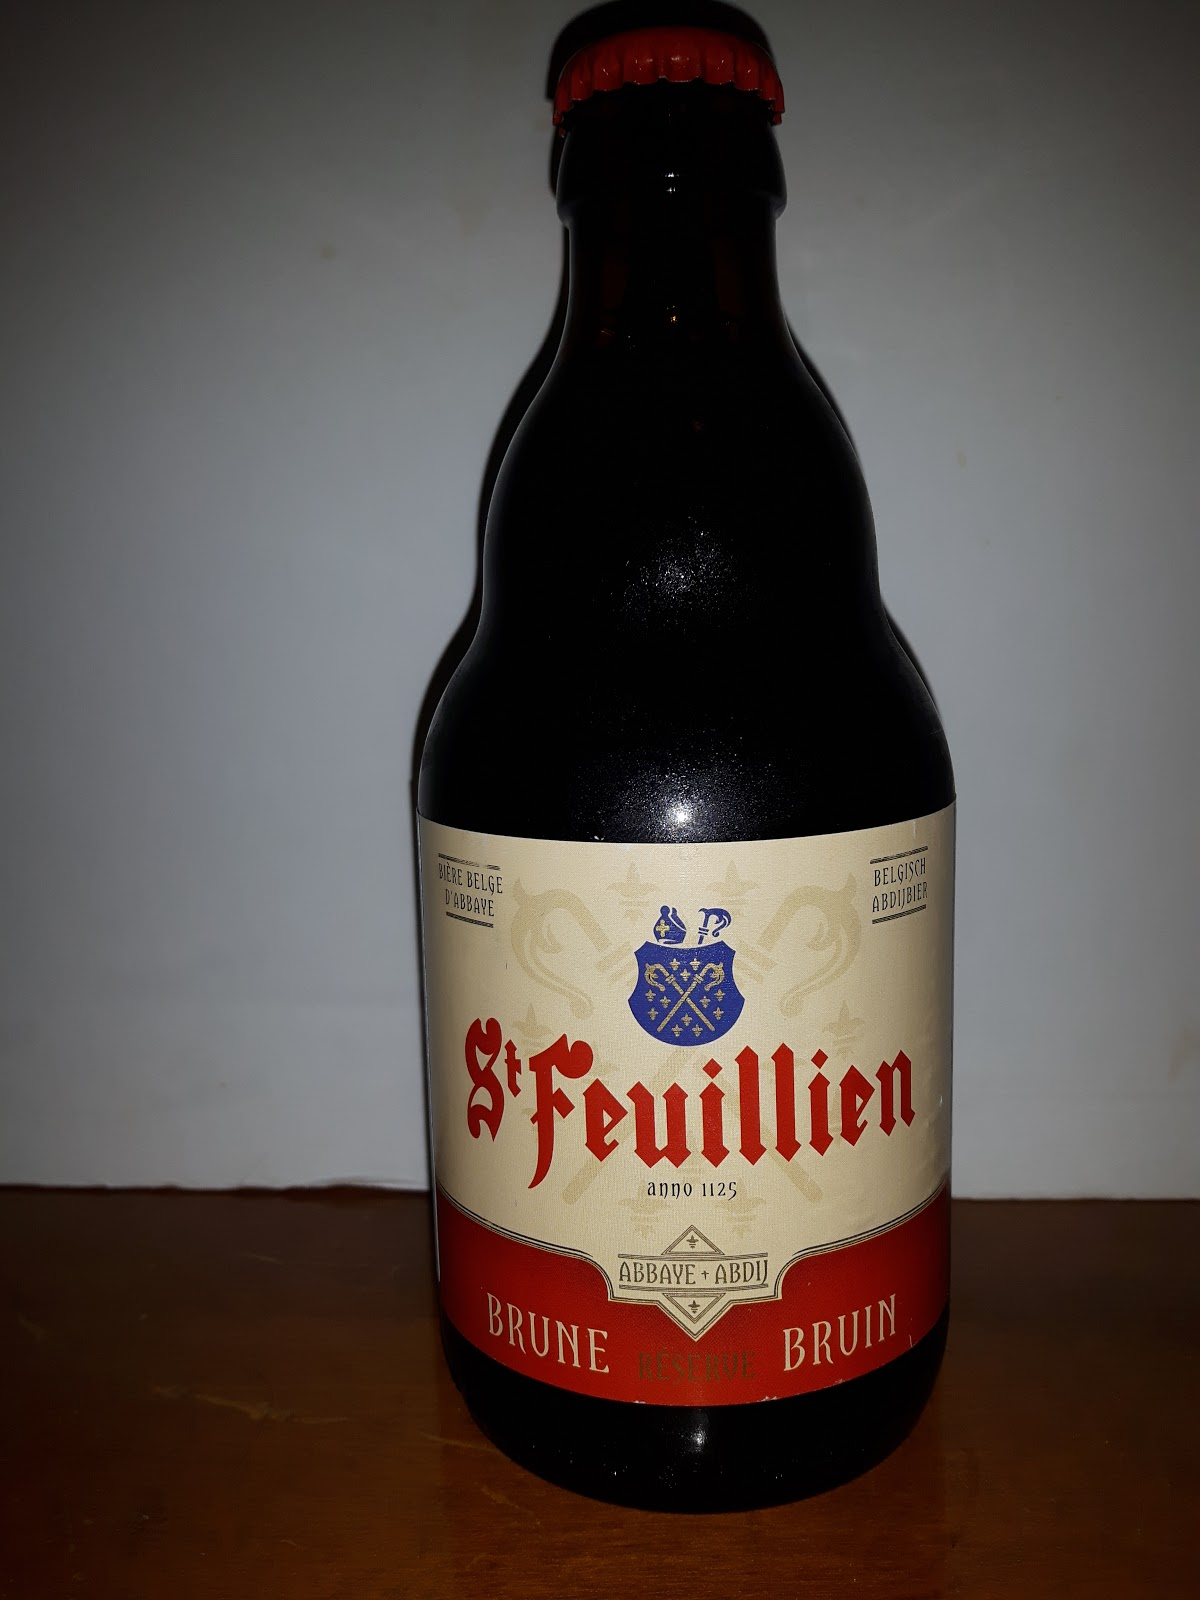 a793e581b0d93 Off to Belgium tonight for this high alcohol Abbey Dubbel from St.  Feuillien in Roeulx. Belgiam beers seems to be synonymous with Christmas  especially here ...